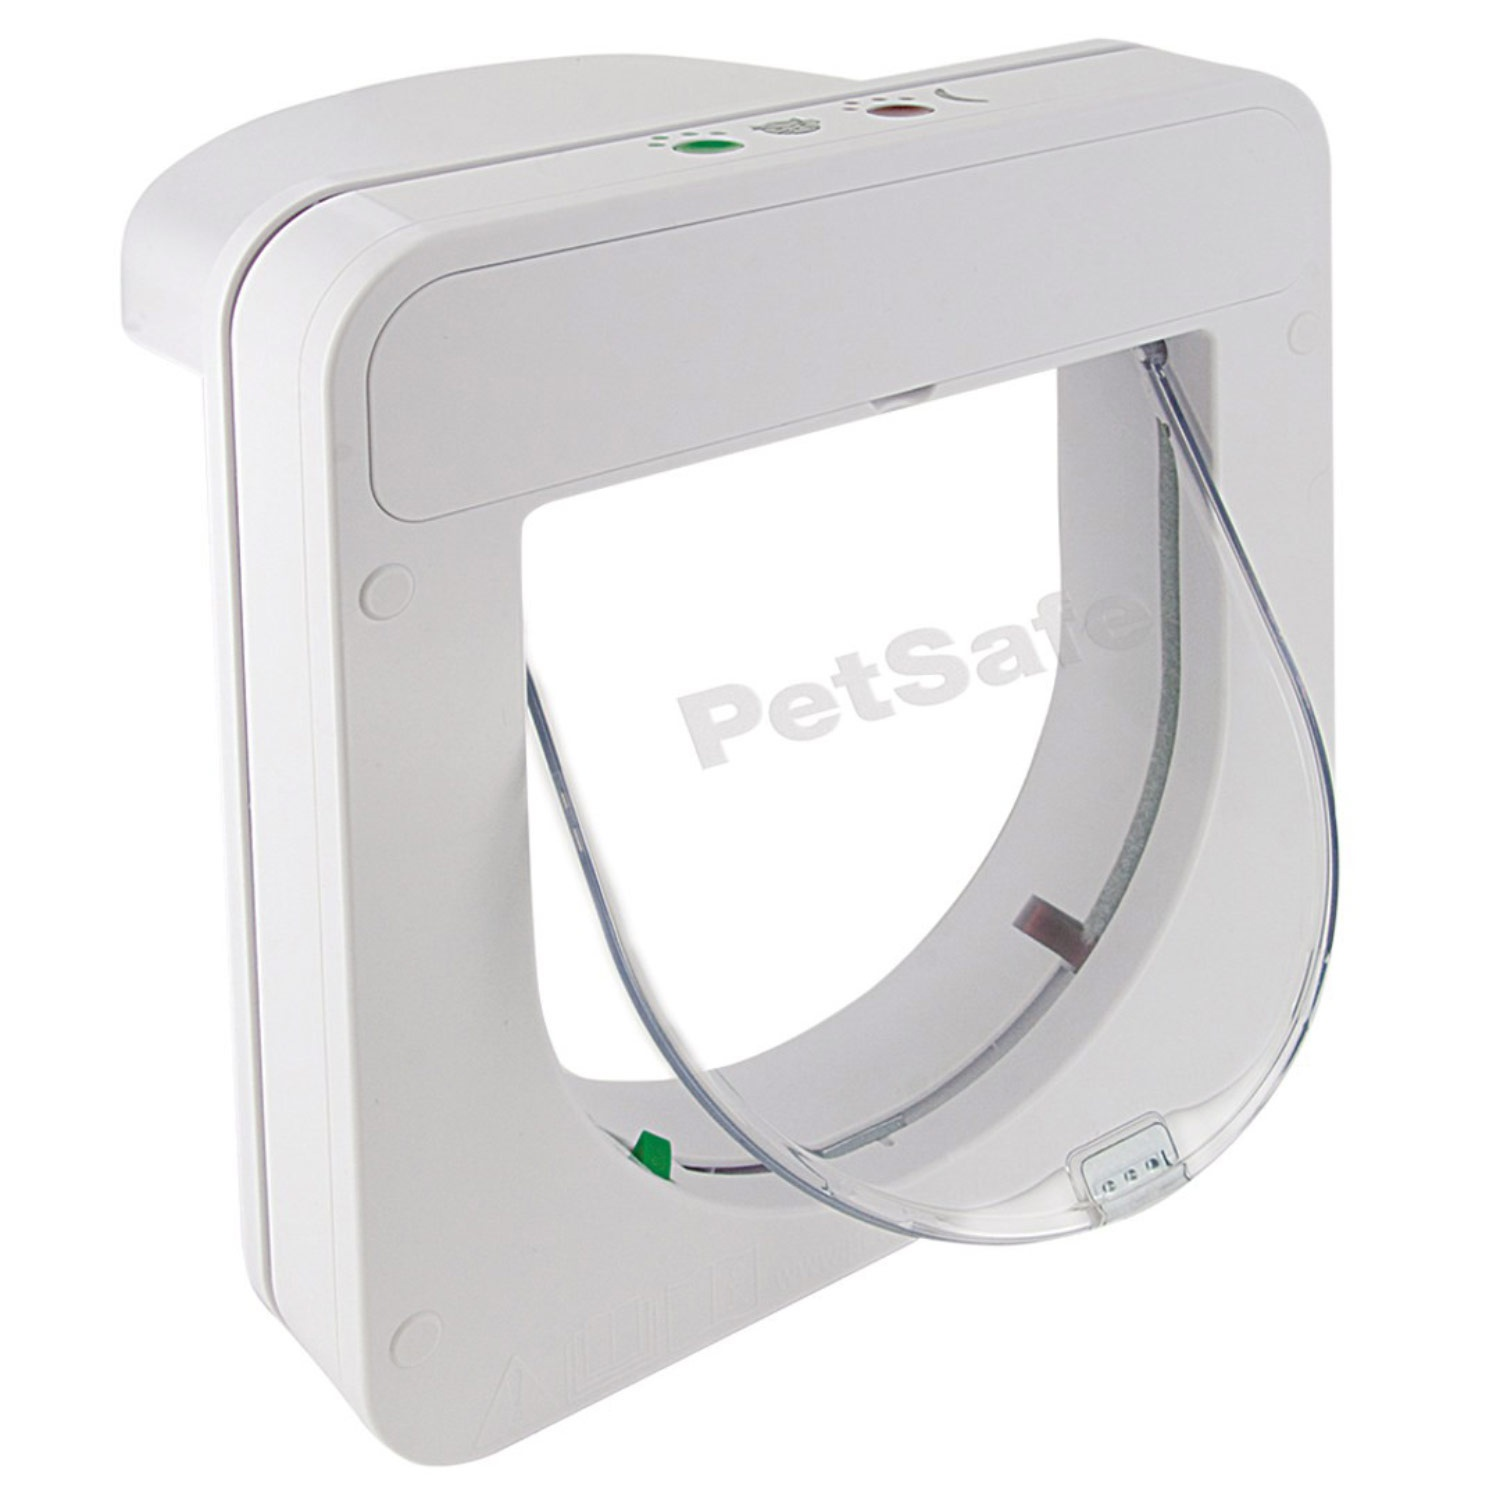 petporte smart flap microchip cat flap petsafe microchip cat rh australianpetshop com au petporte smart flap manual dansk petporte smart flap manual pdf